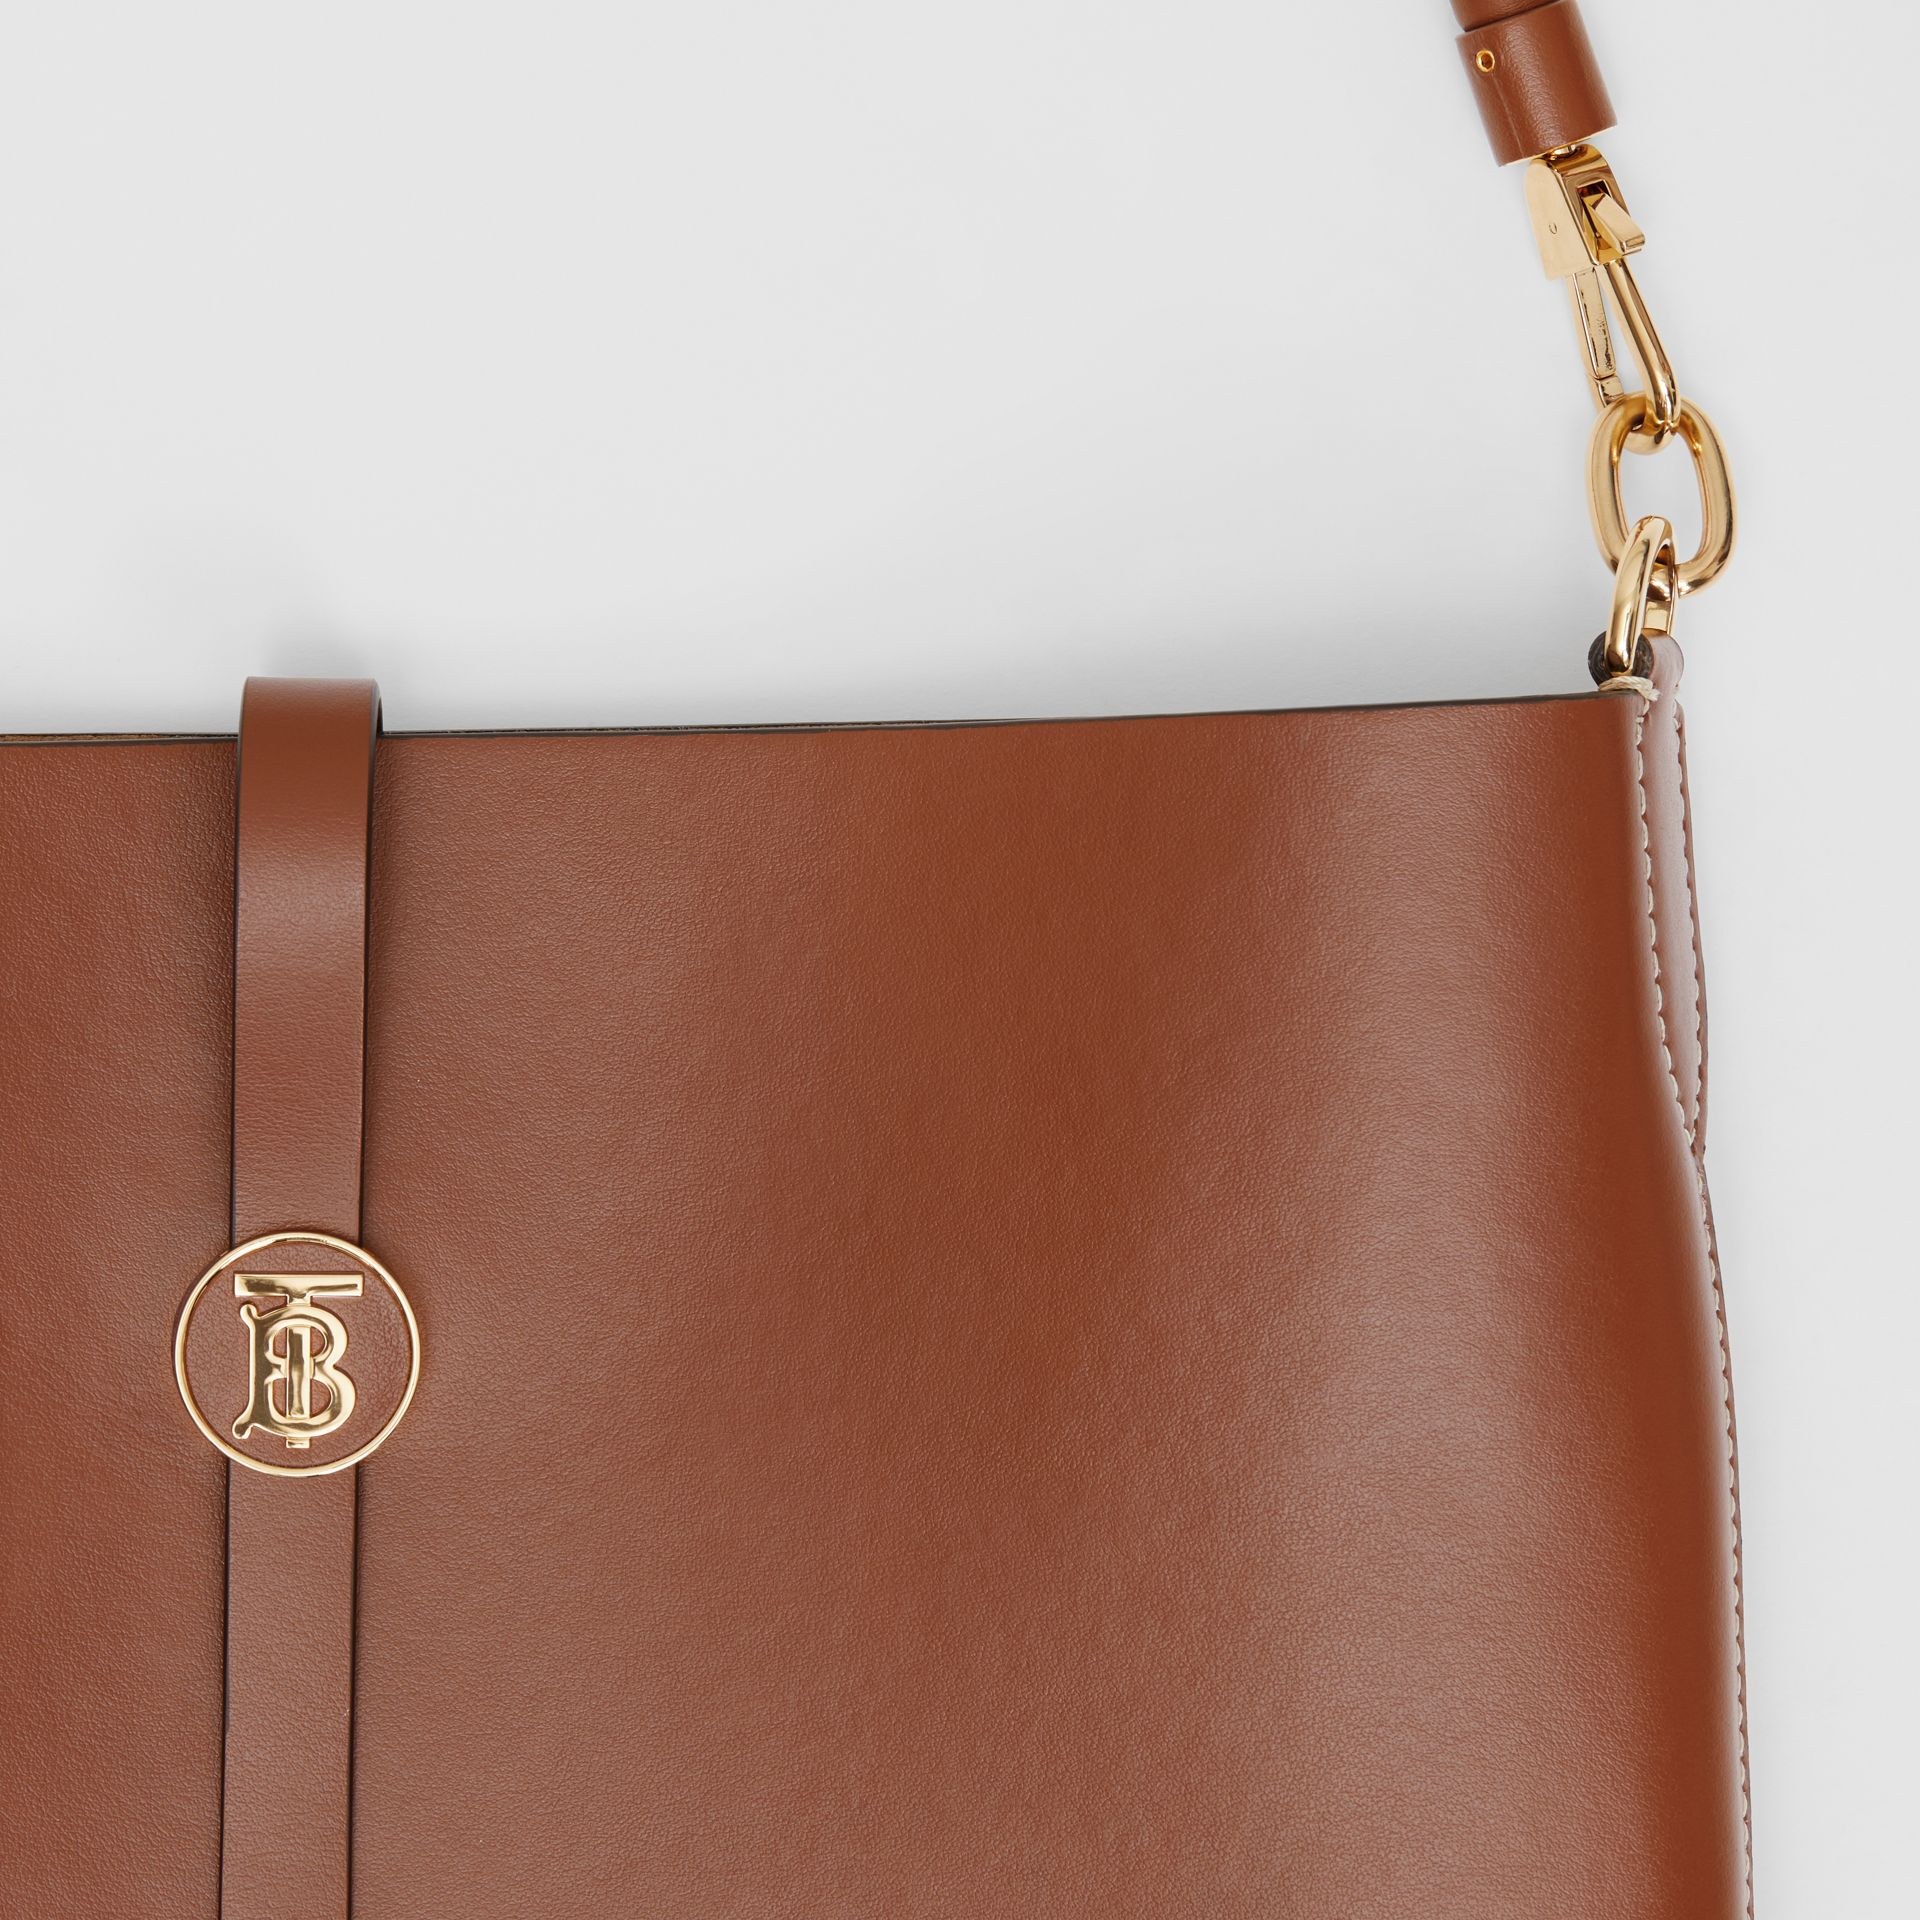 Leather Anne Bag in Tan - Women | Burberry - gallery image 1